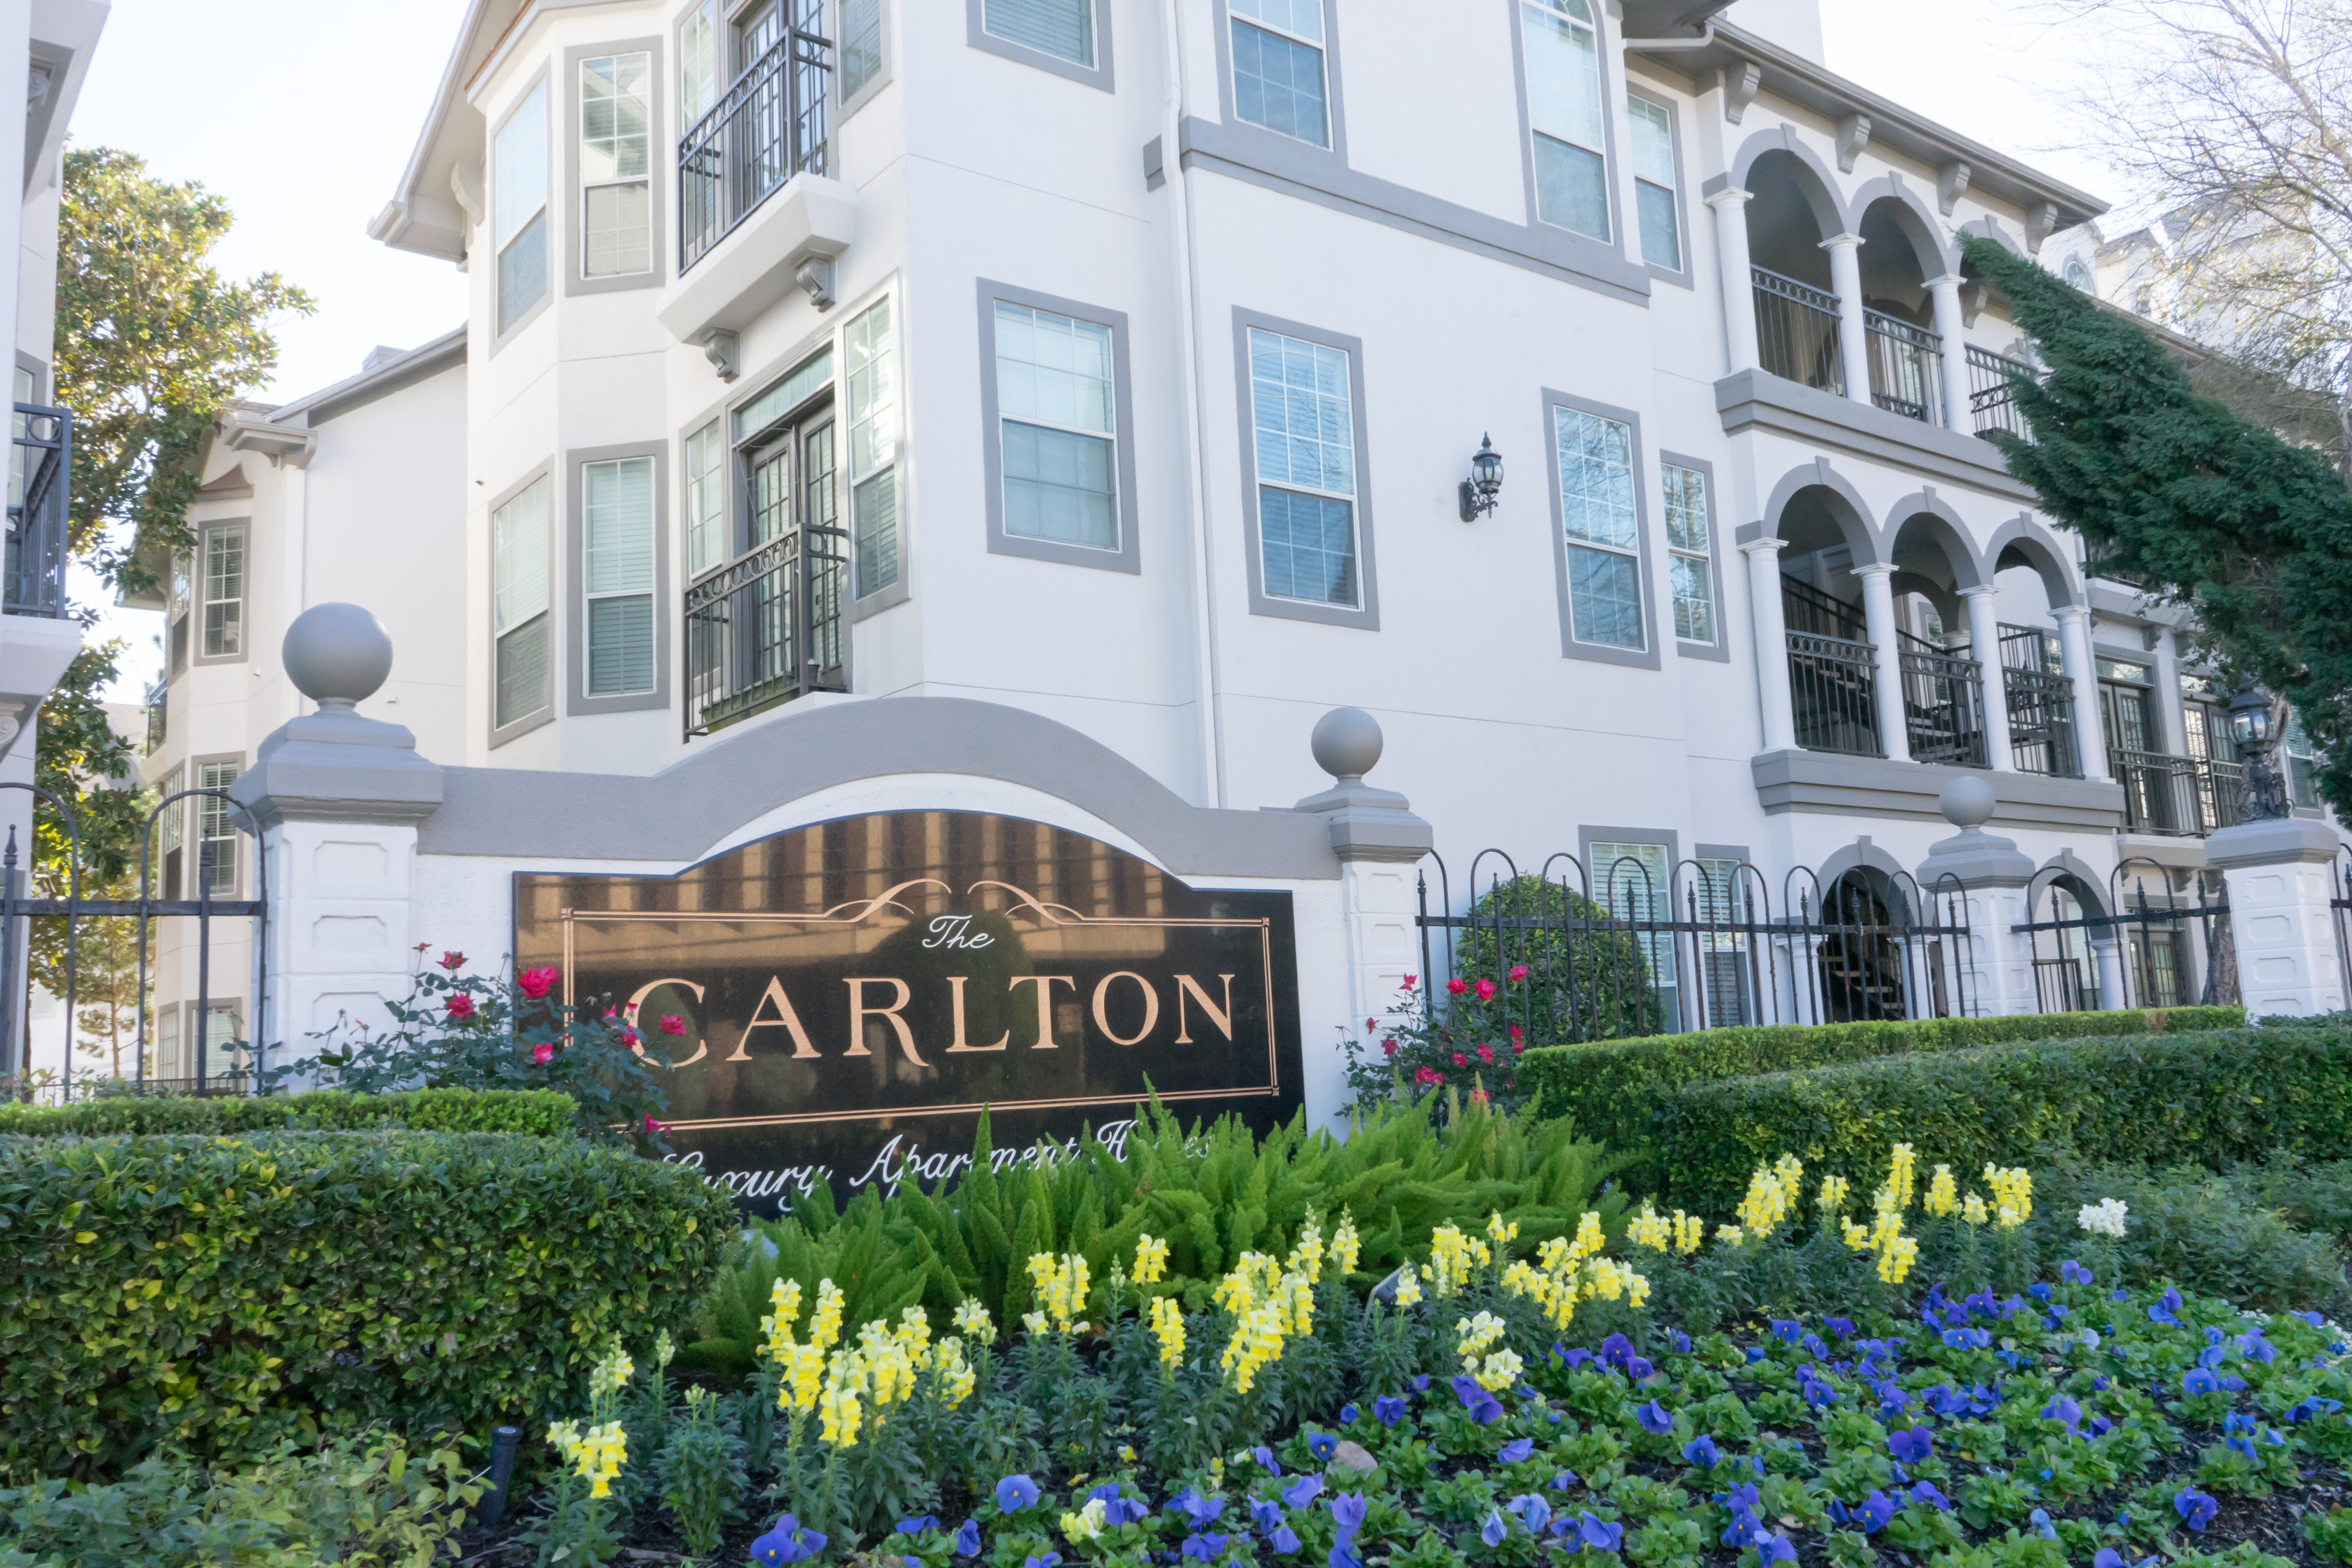 The Carlton for rent